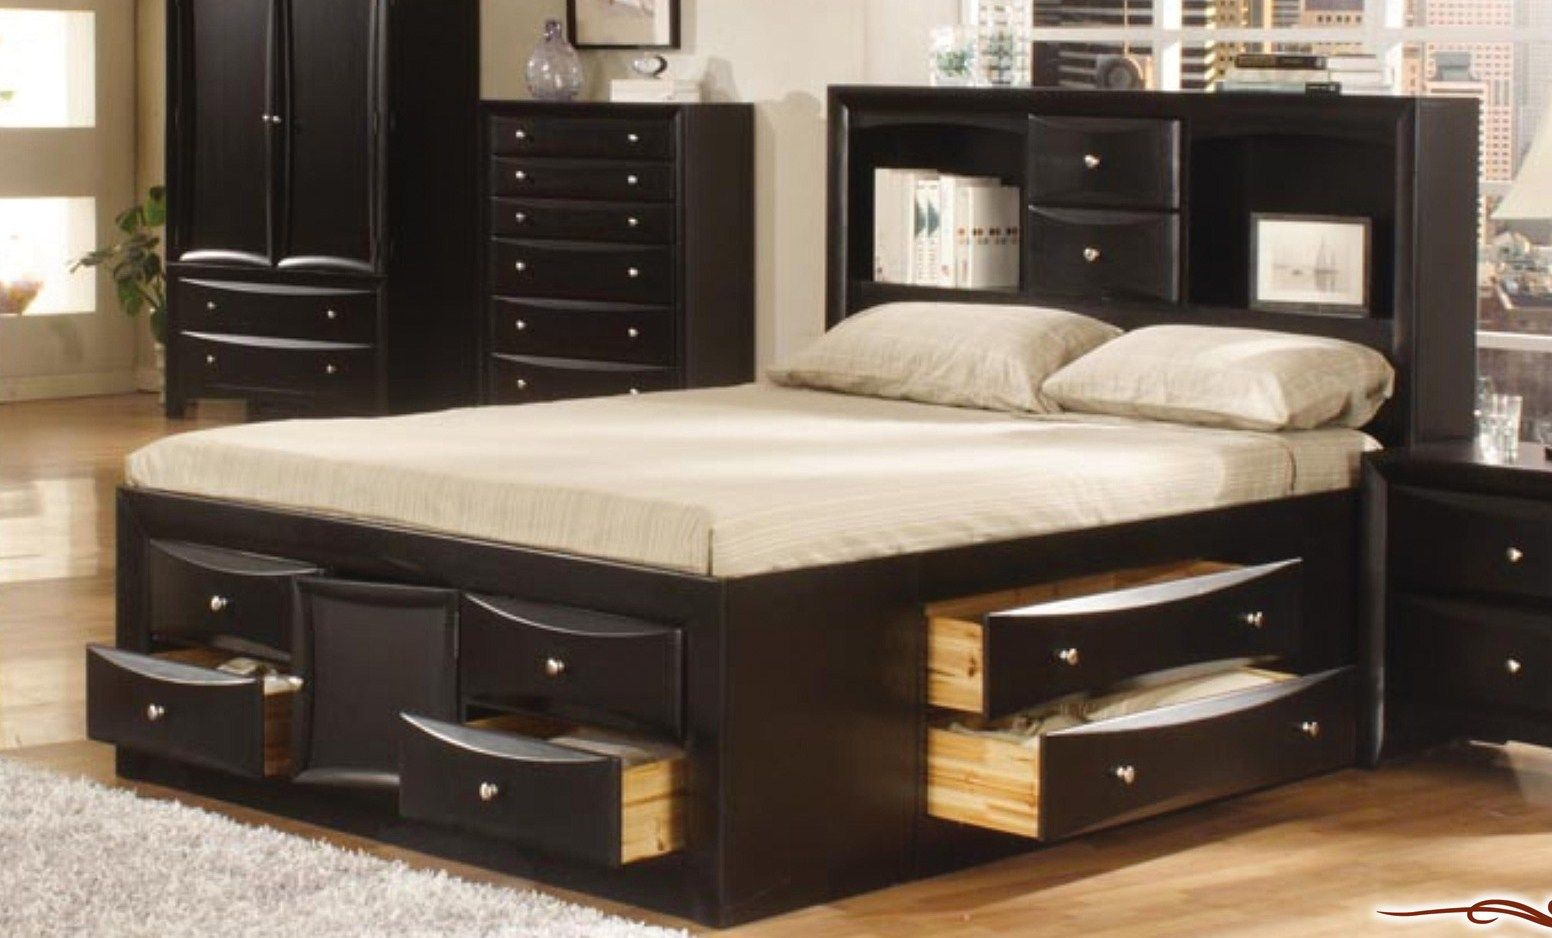 King Size Bed With Storage Finished Bedroom Set With